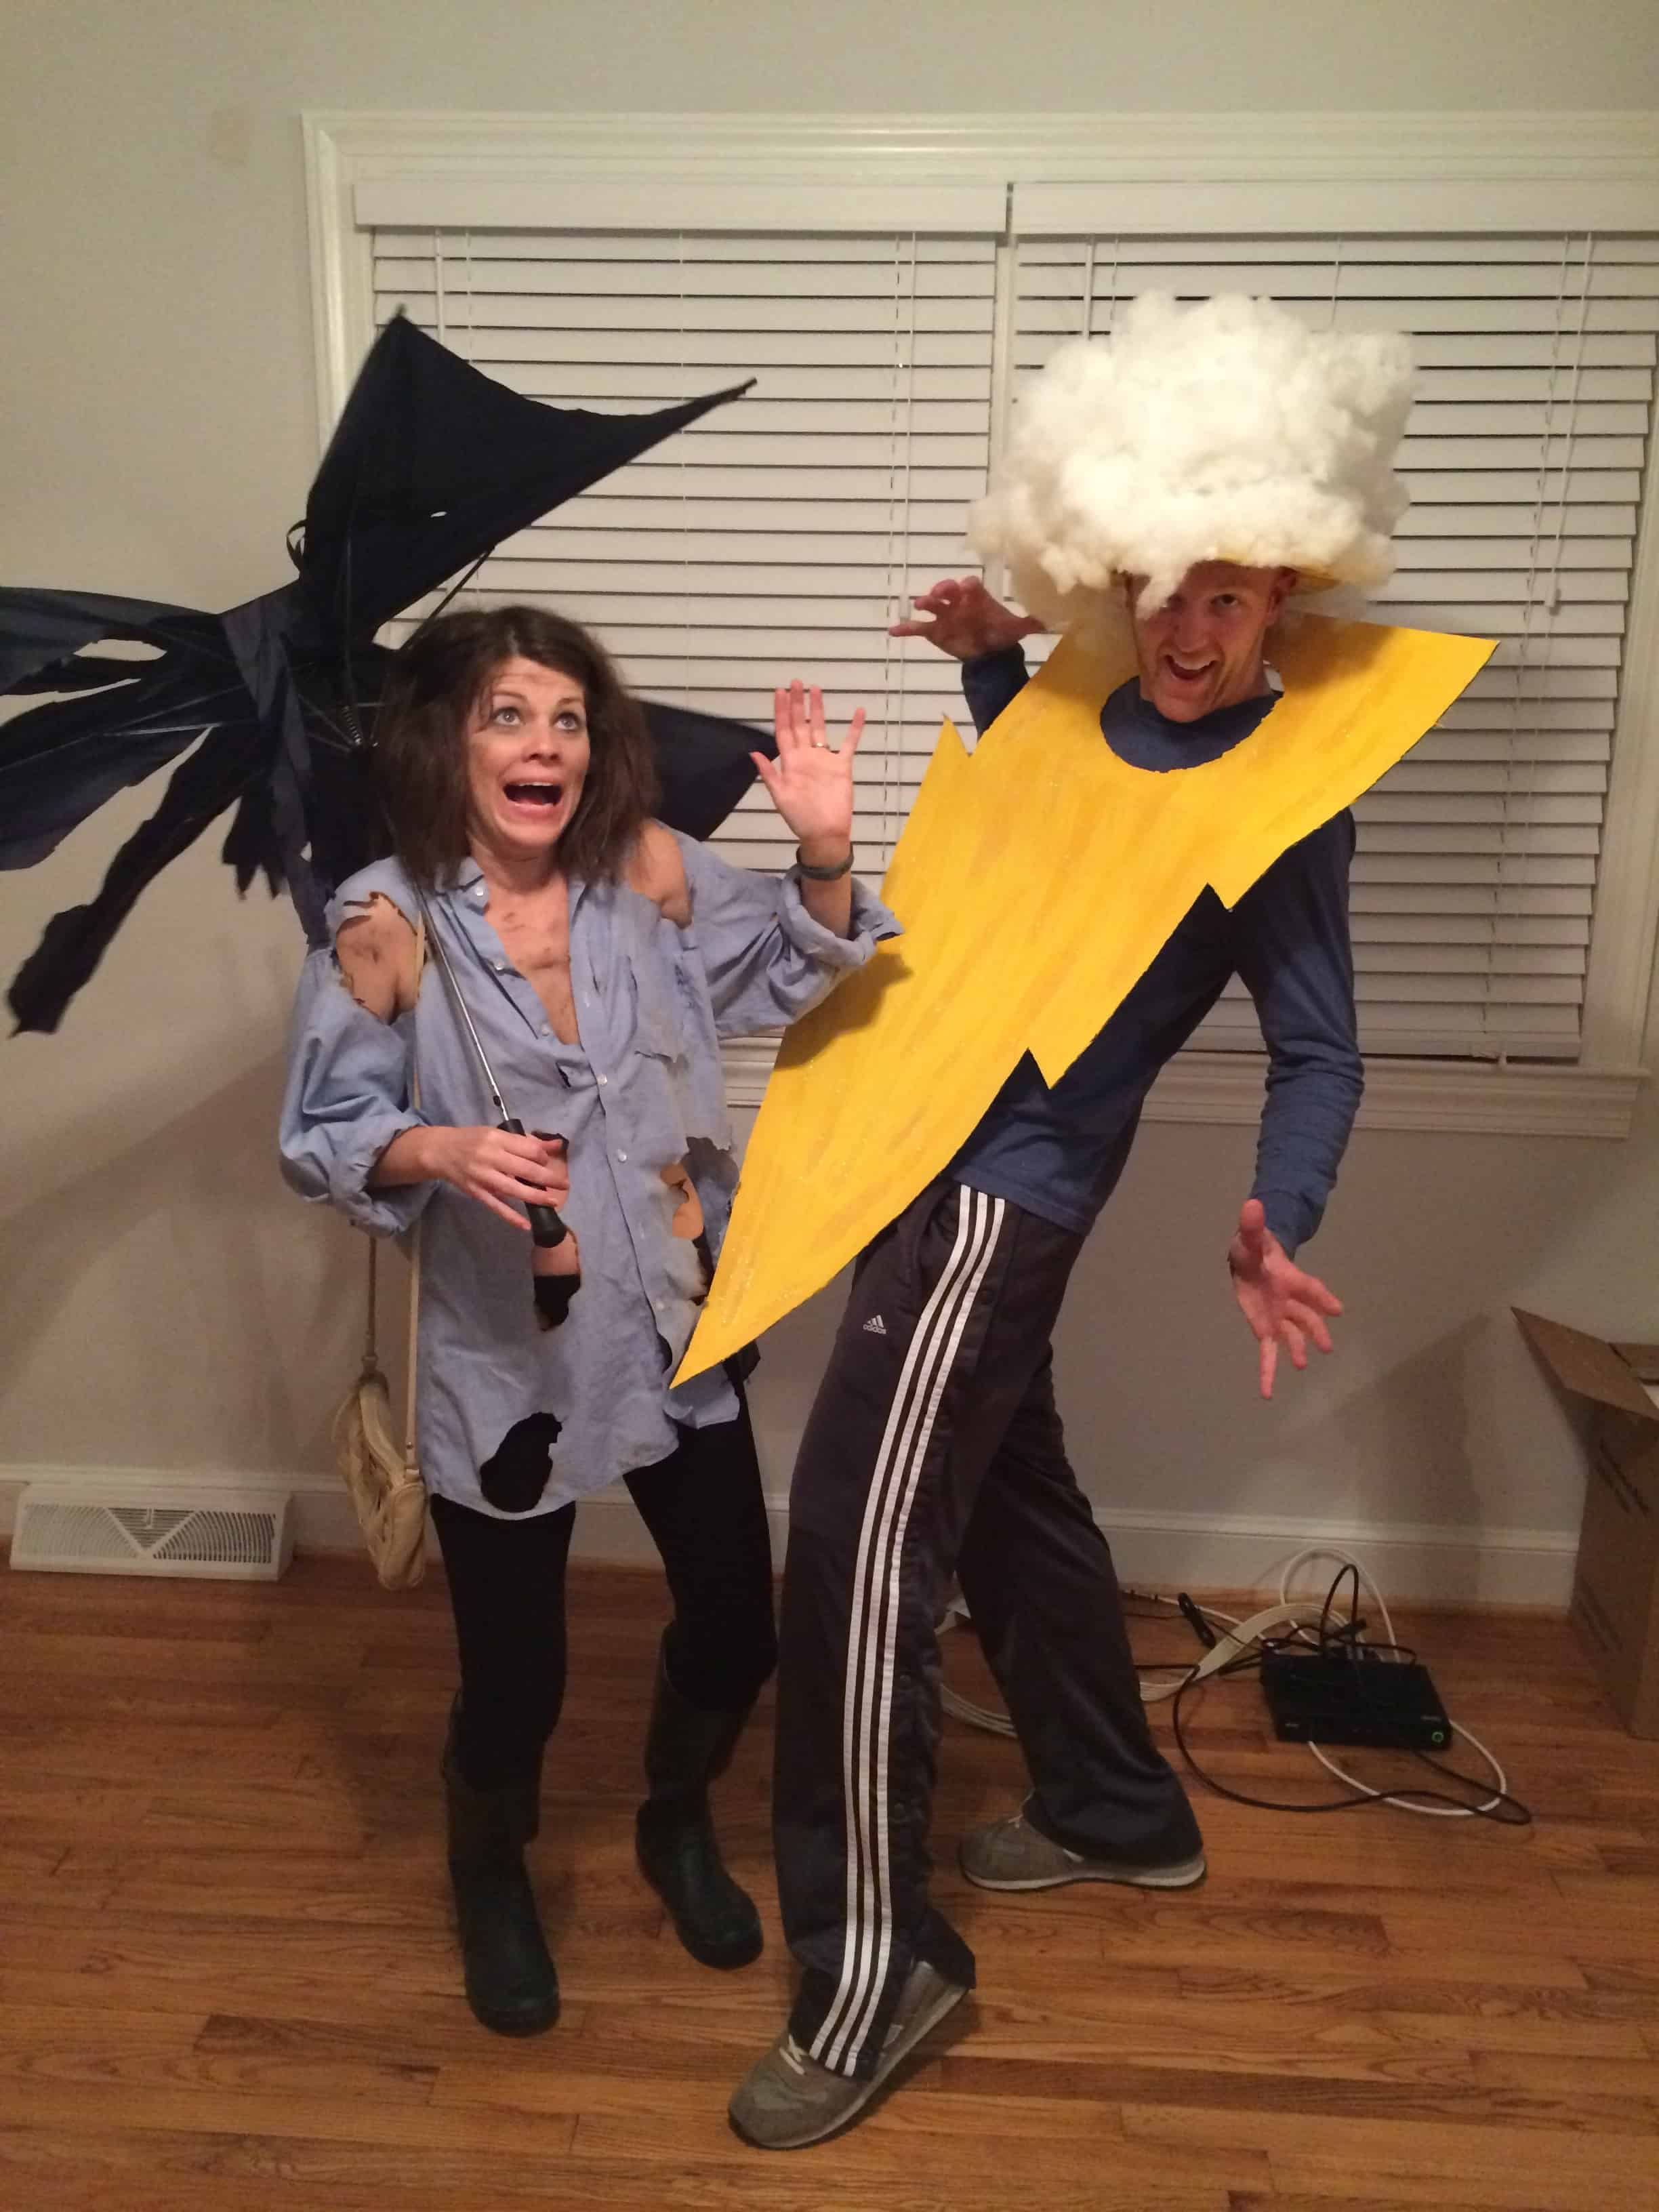 lightning bolt and strike victim funny halloween costume for couple